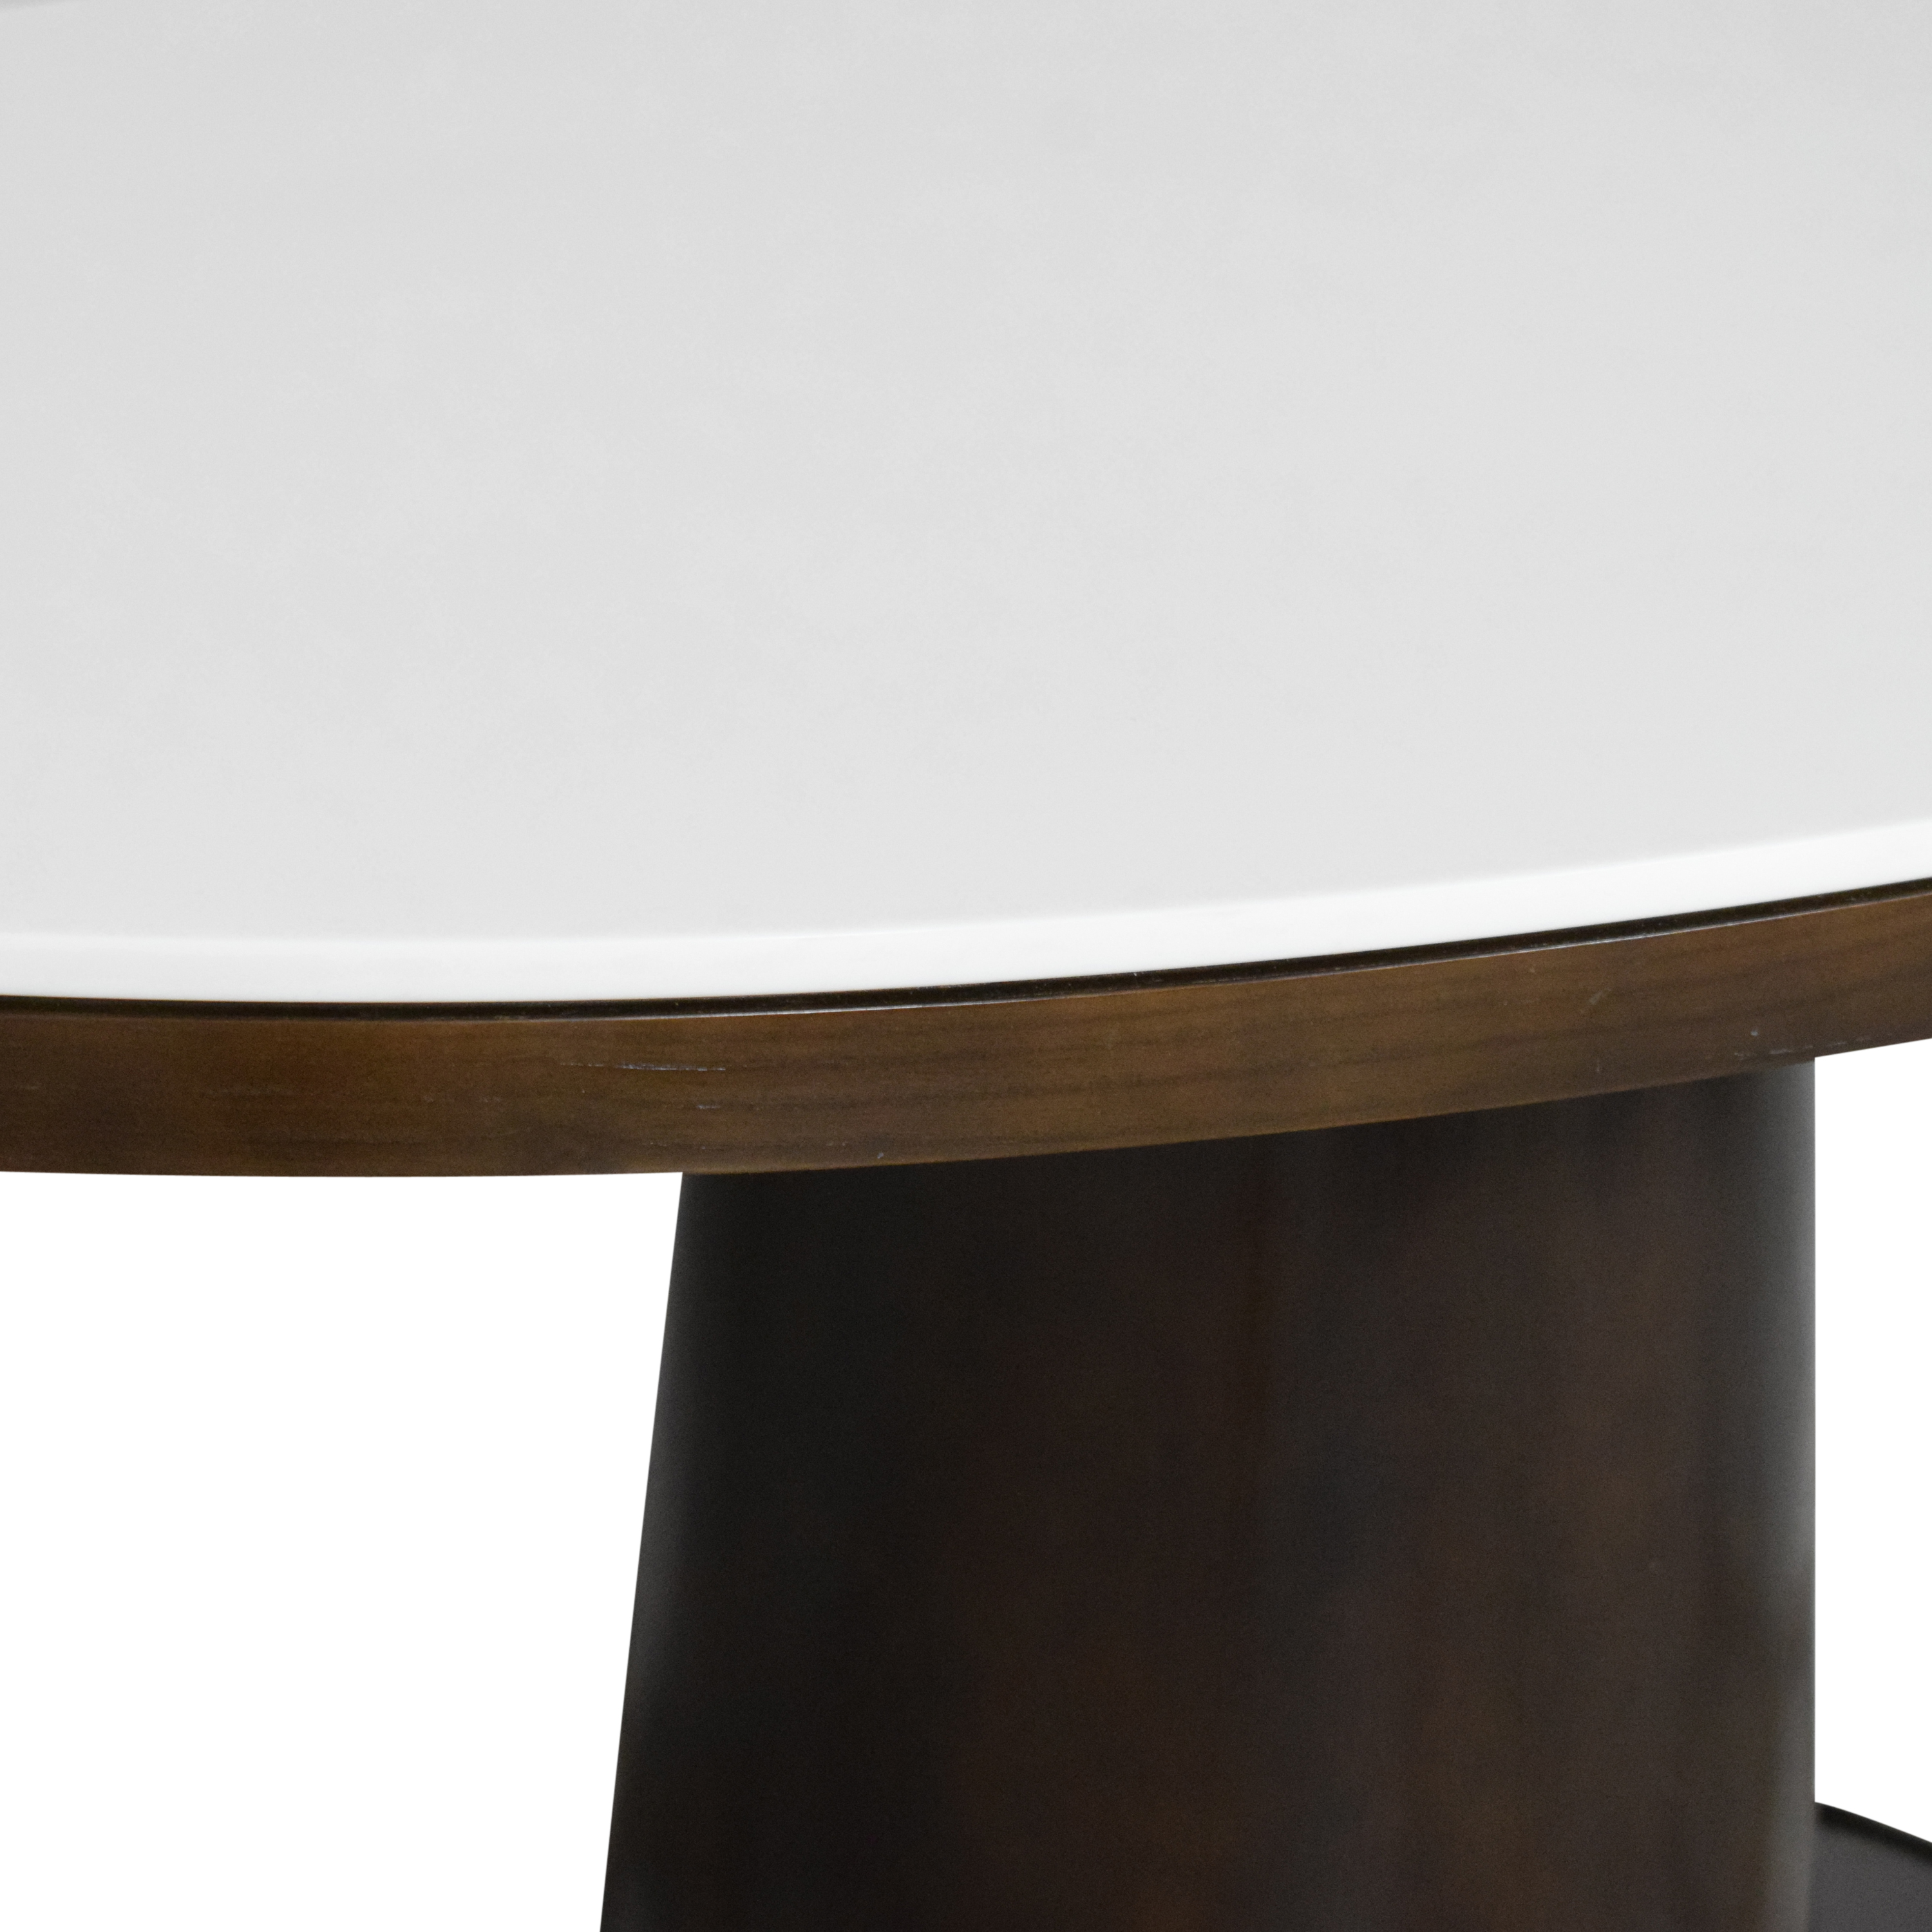 McGuire McGuire Barbara Barry Classic Oval Pedestal Table second hand